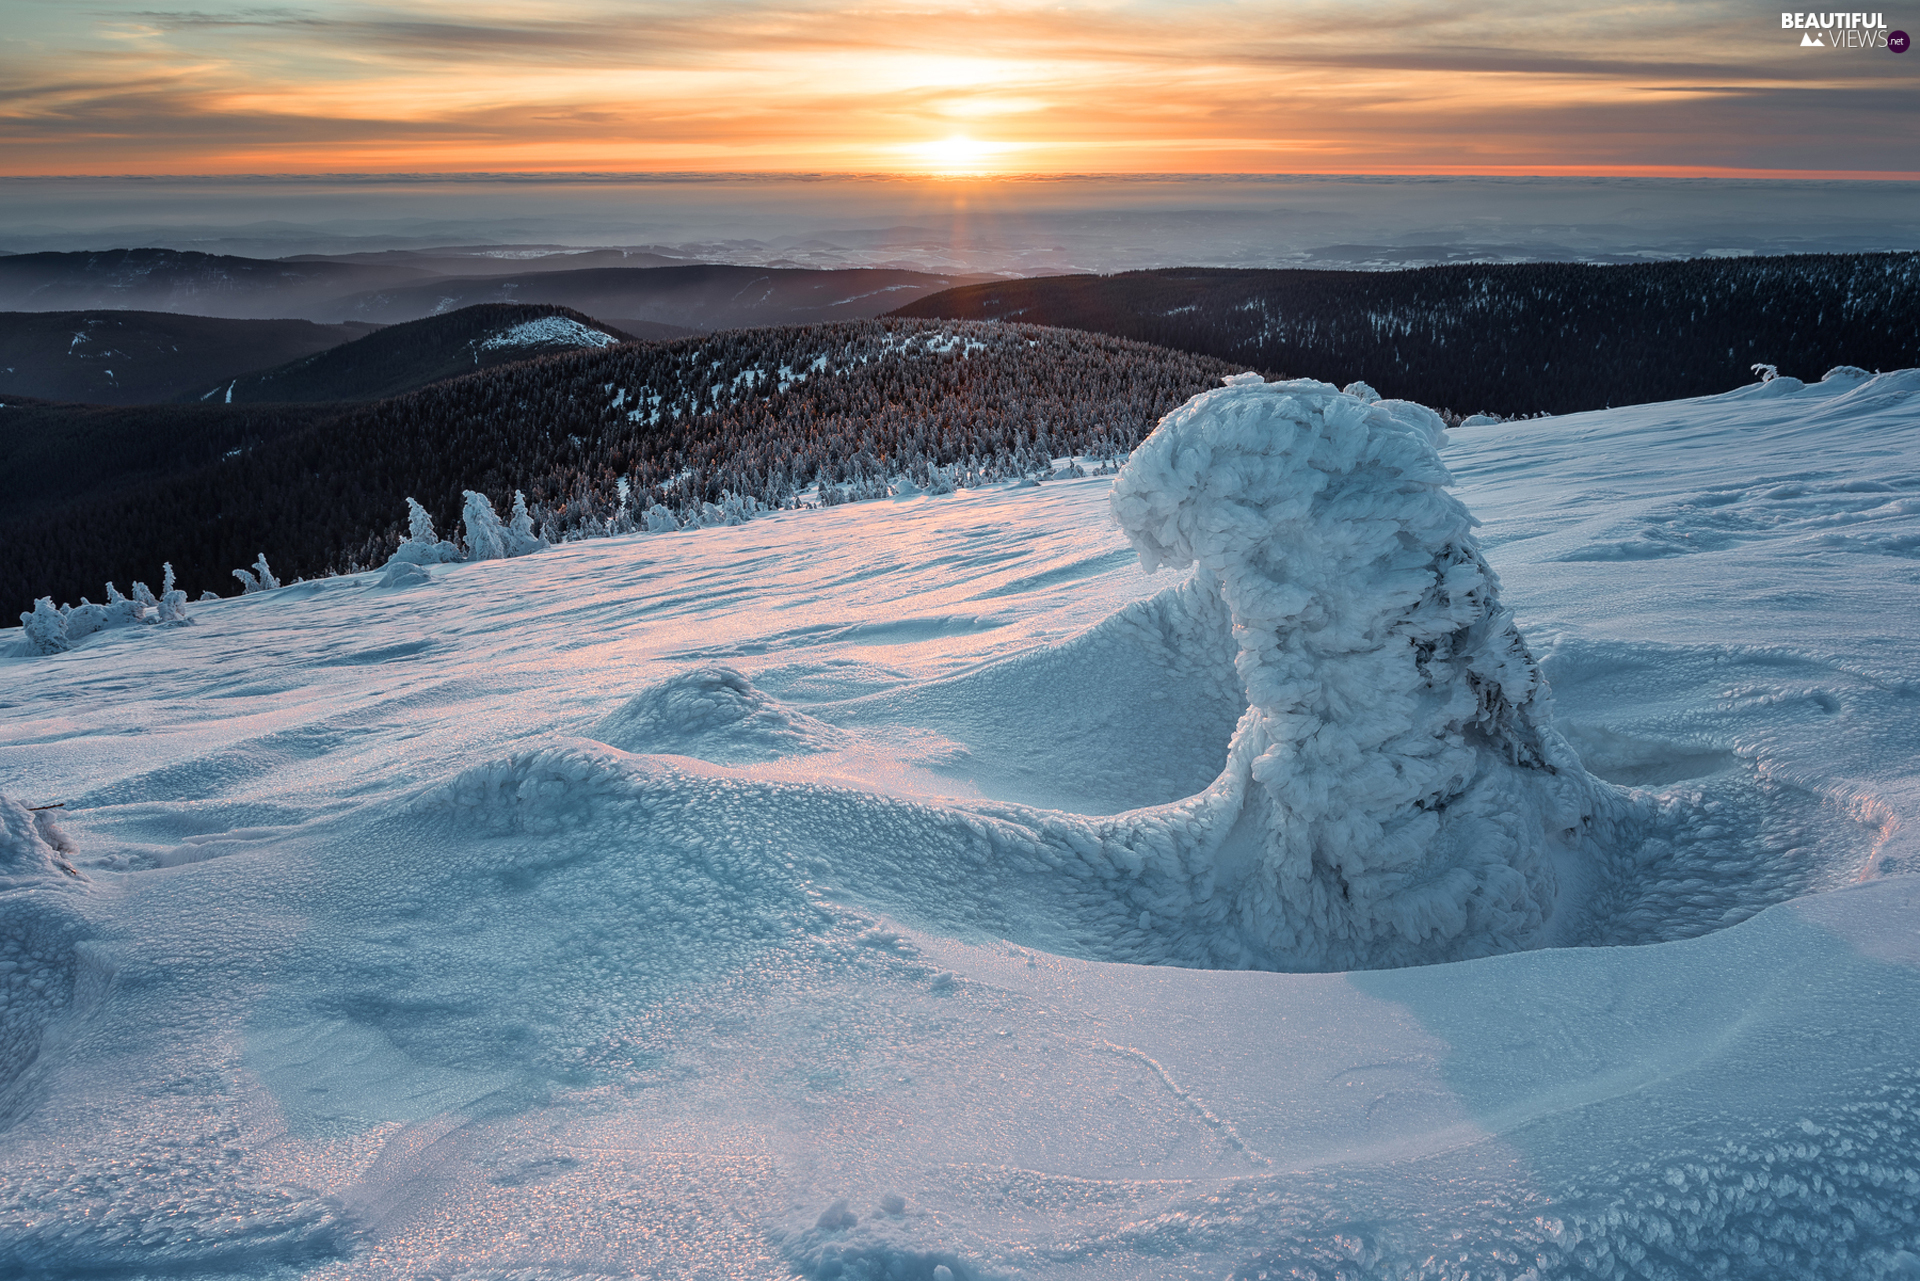 snowy, winter, viewes, Great Sunsets, trees, Mountains